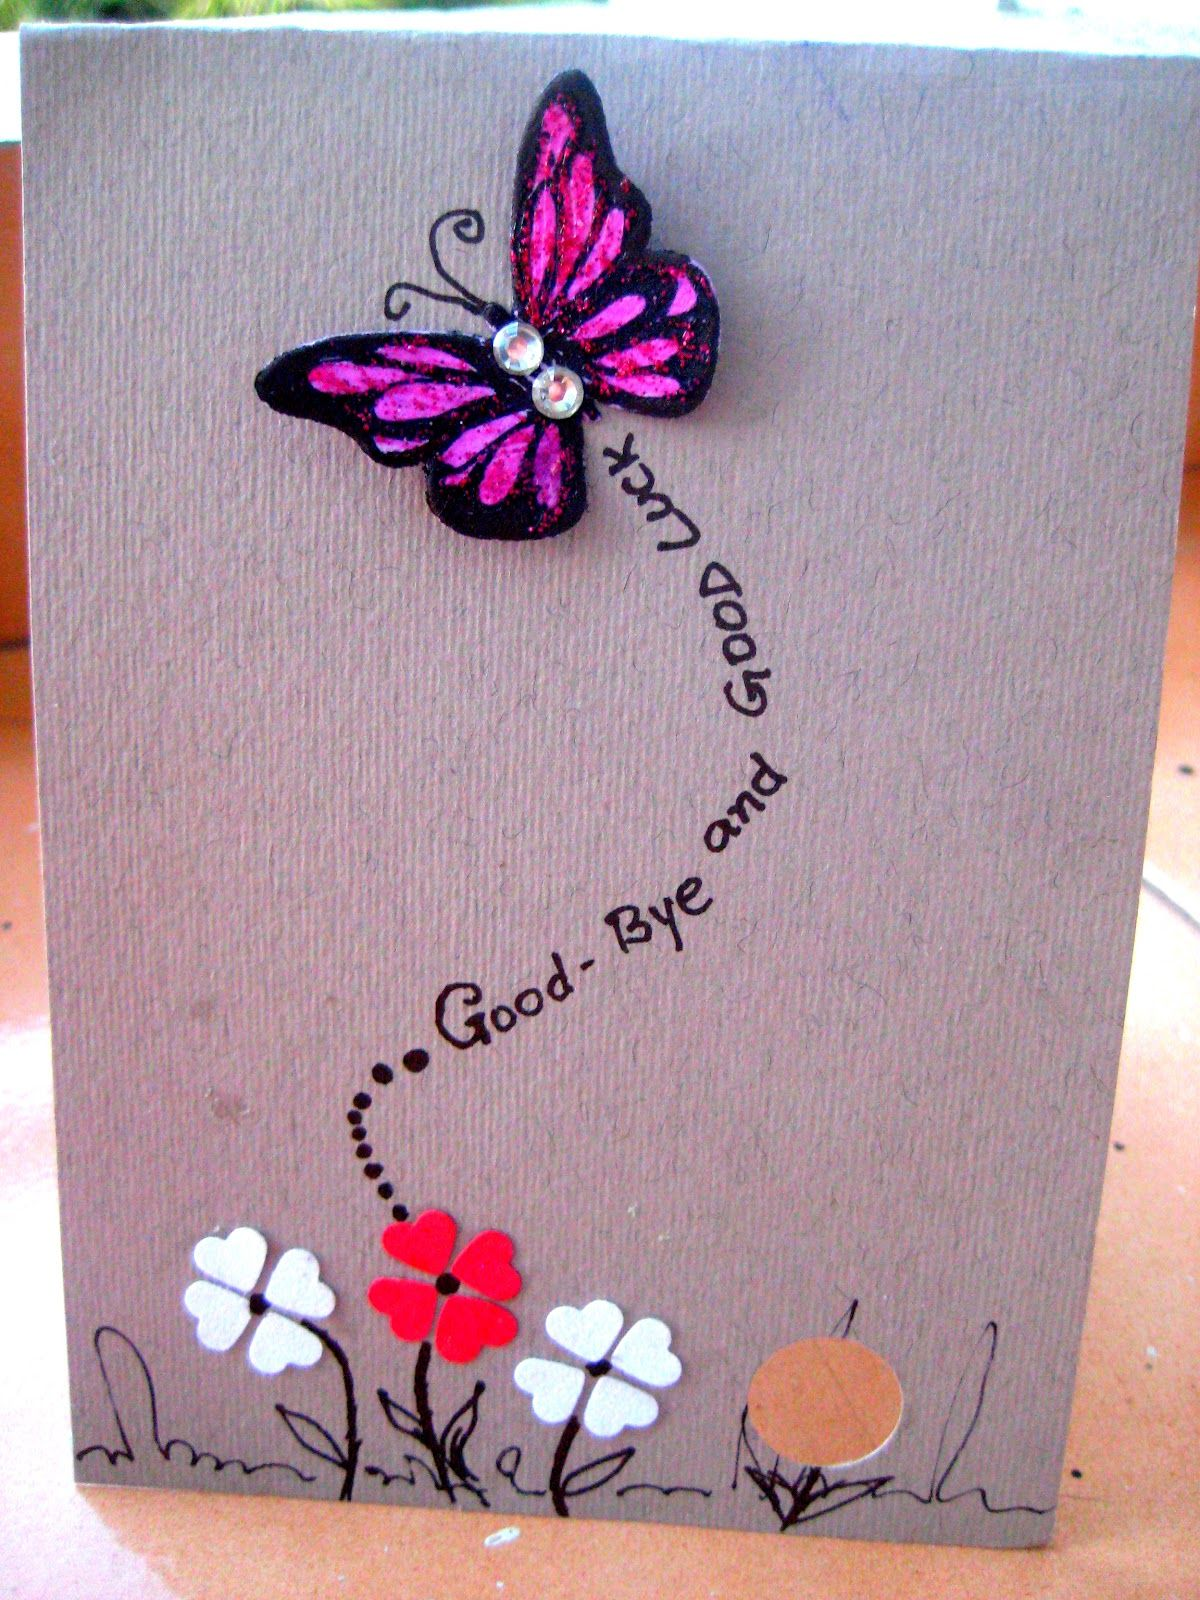 Well Miss You Card Things To Do Pinterest Cards Diy Cards